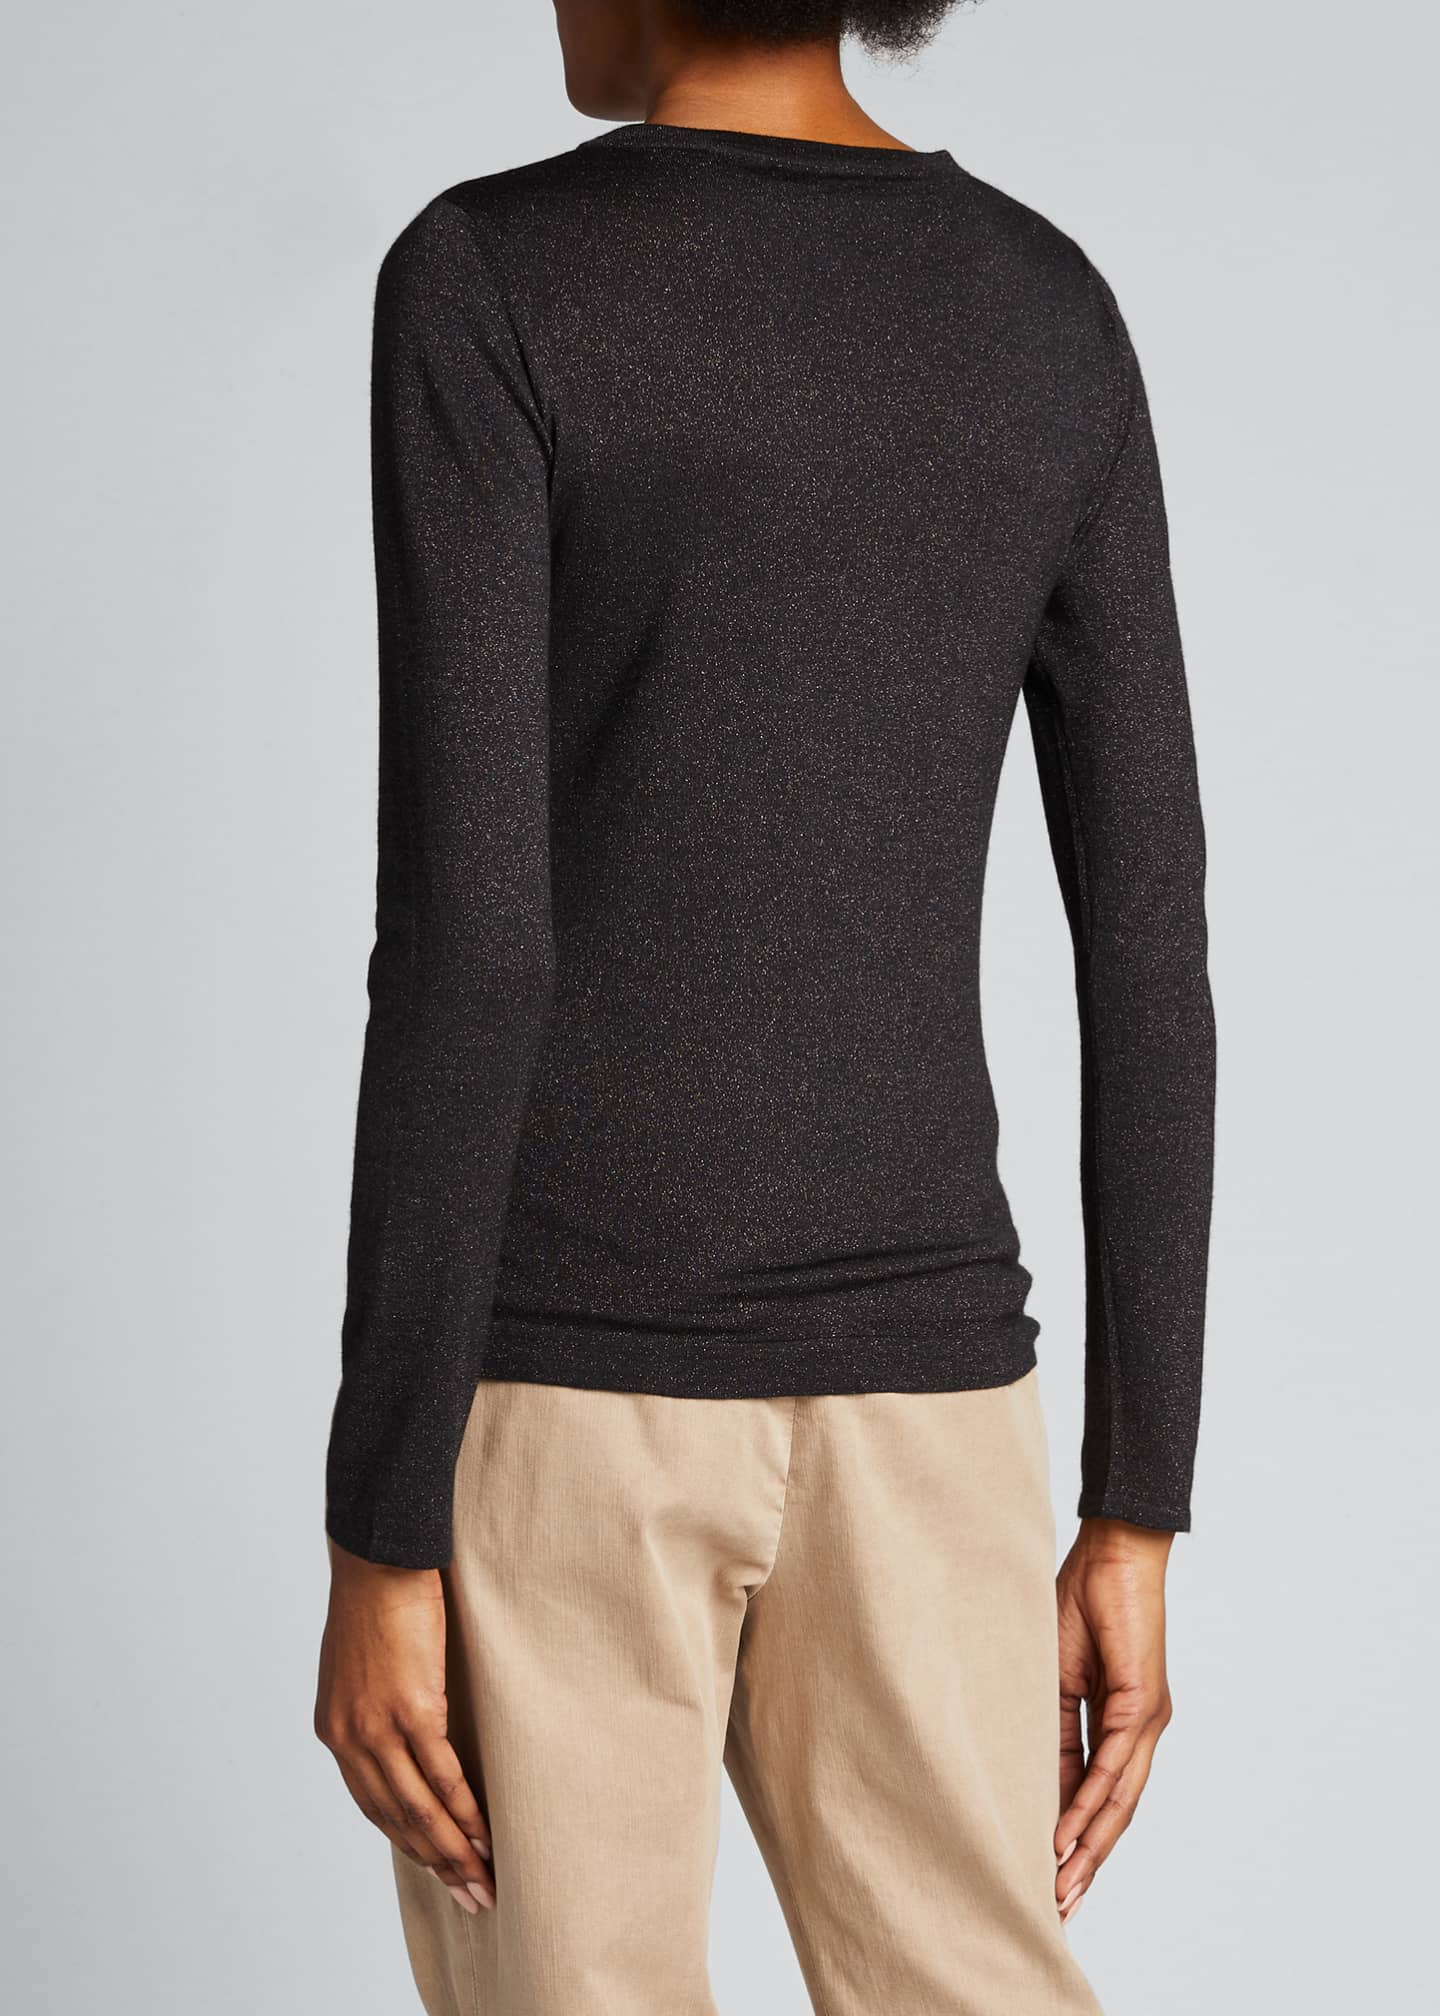 Image 2 of 5: Crewneck Long-Sleeve Cashmere-Blend Knit Pullover